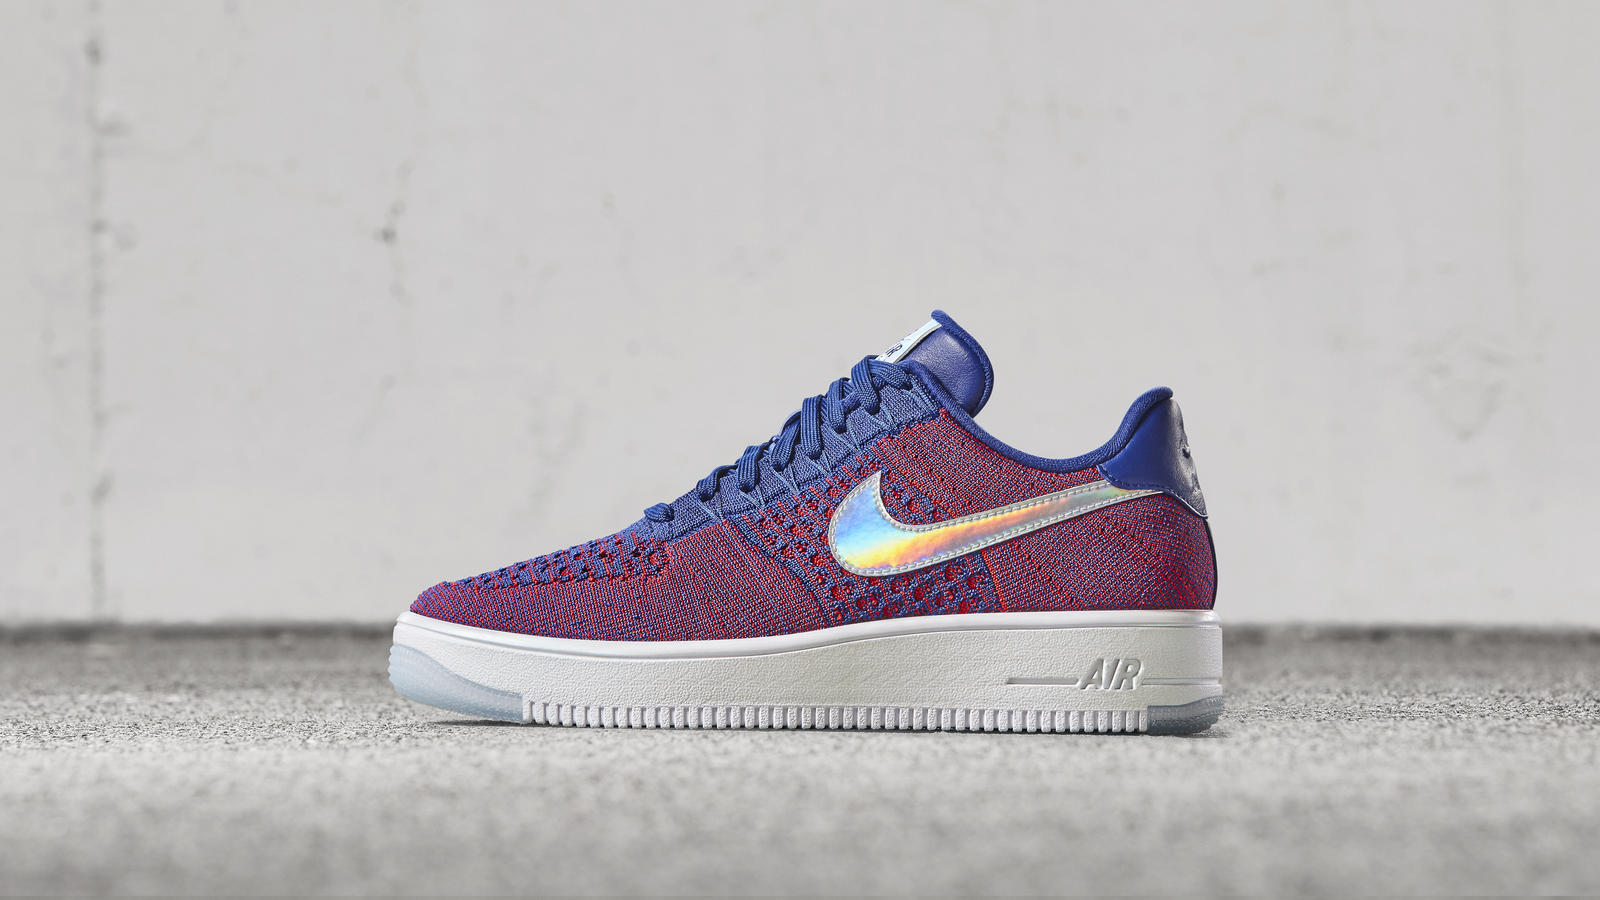 the nike air force 1 ultra flyknit low gets a 39 usa 39 colorway weartesters. Black Bedroom Furniture Sets. Home Design Ideas